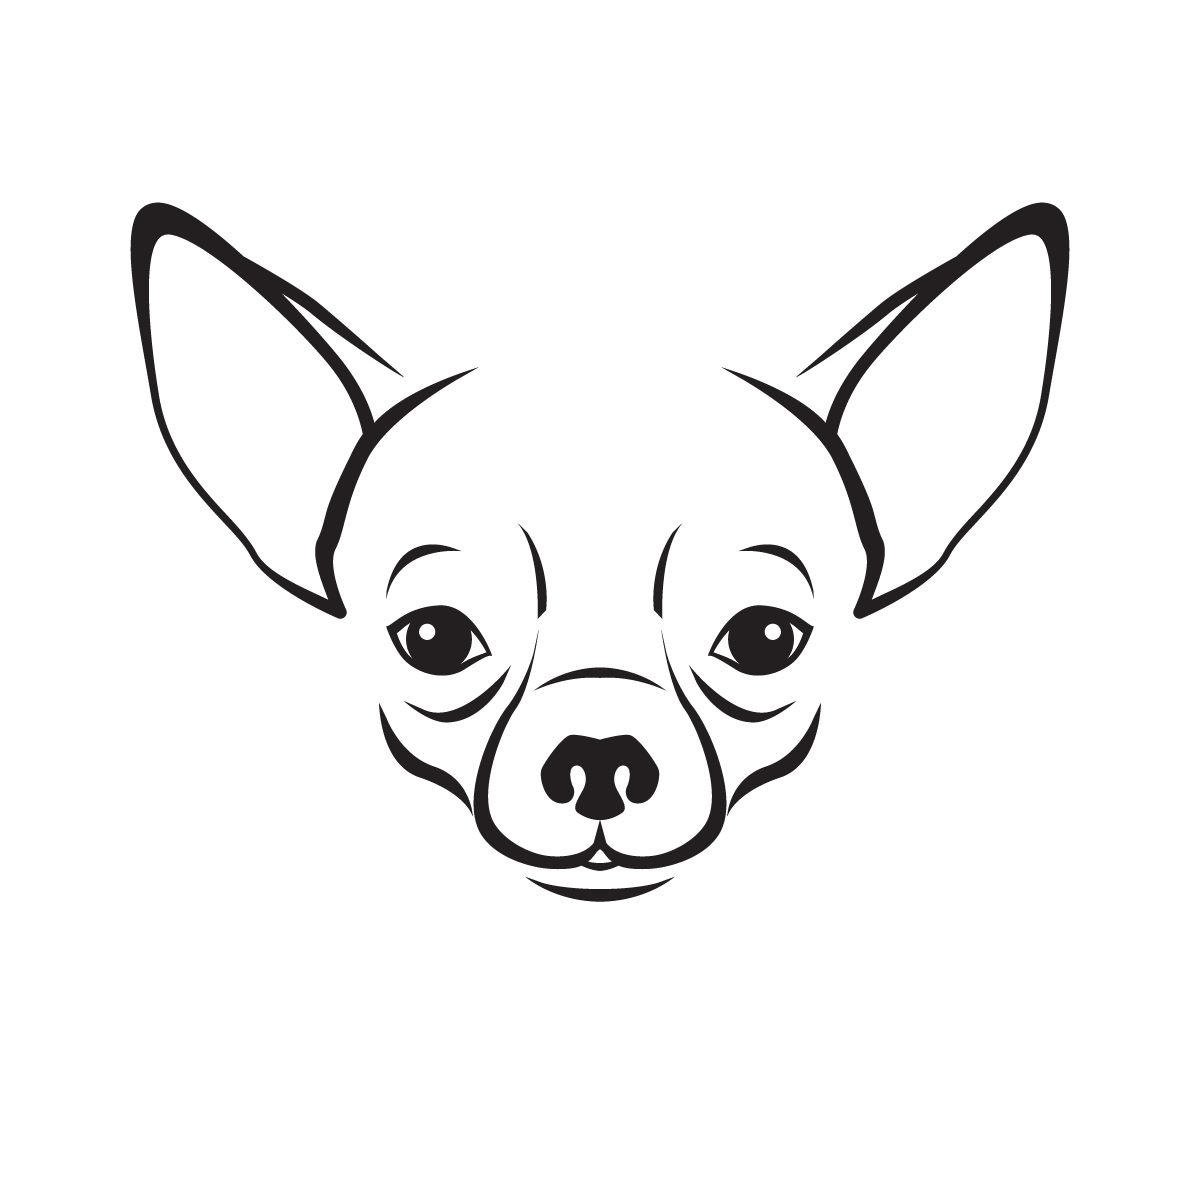 Pin On Free Svg Files Designs For Cricut [ 1200 x 1200 Pixel ]